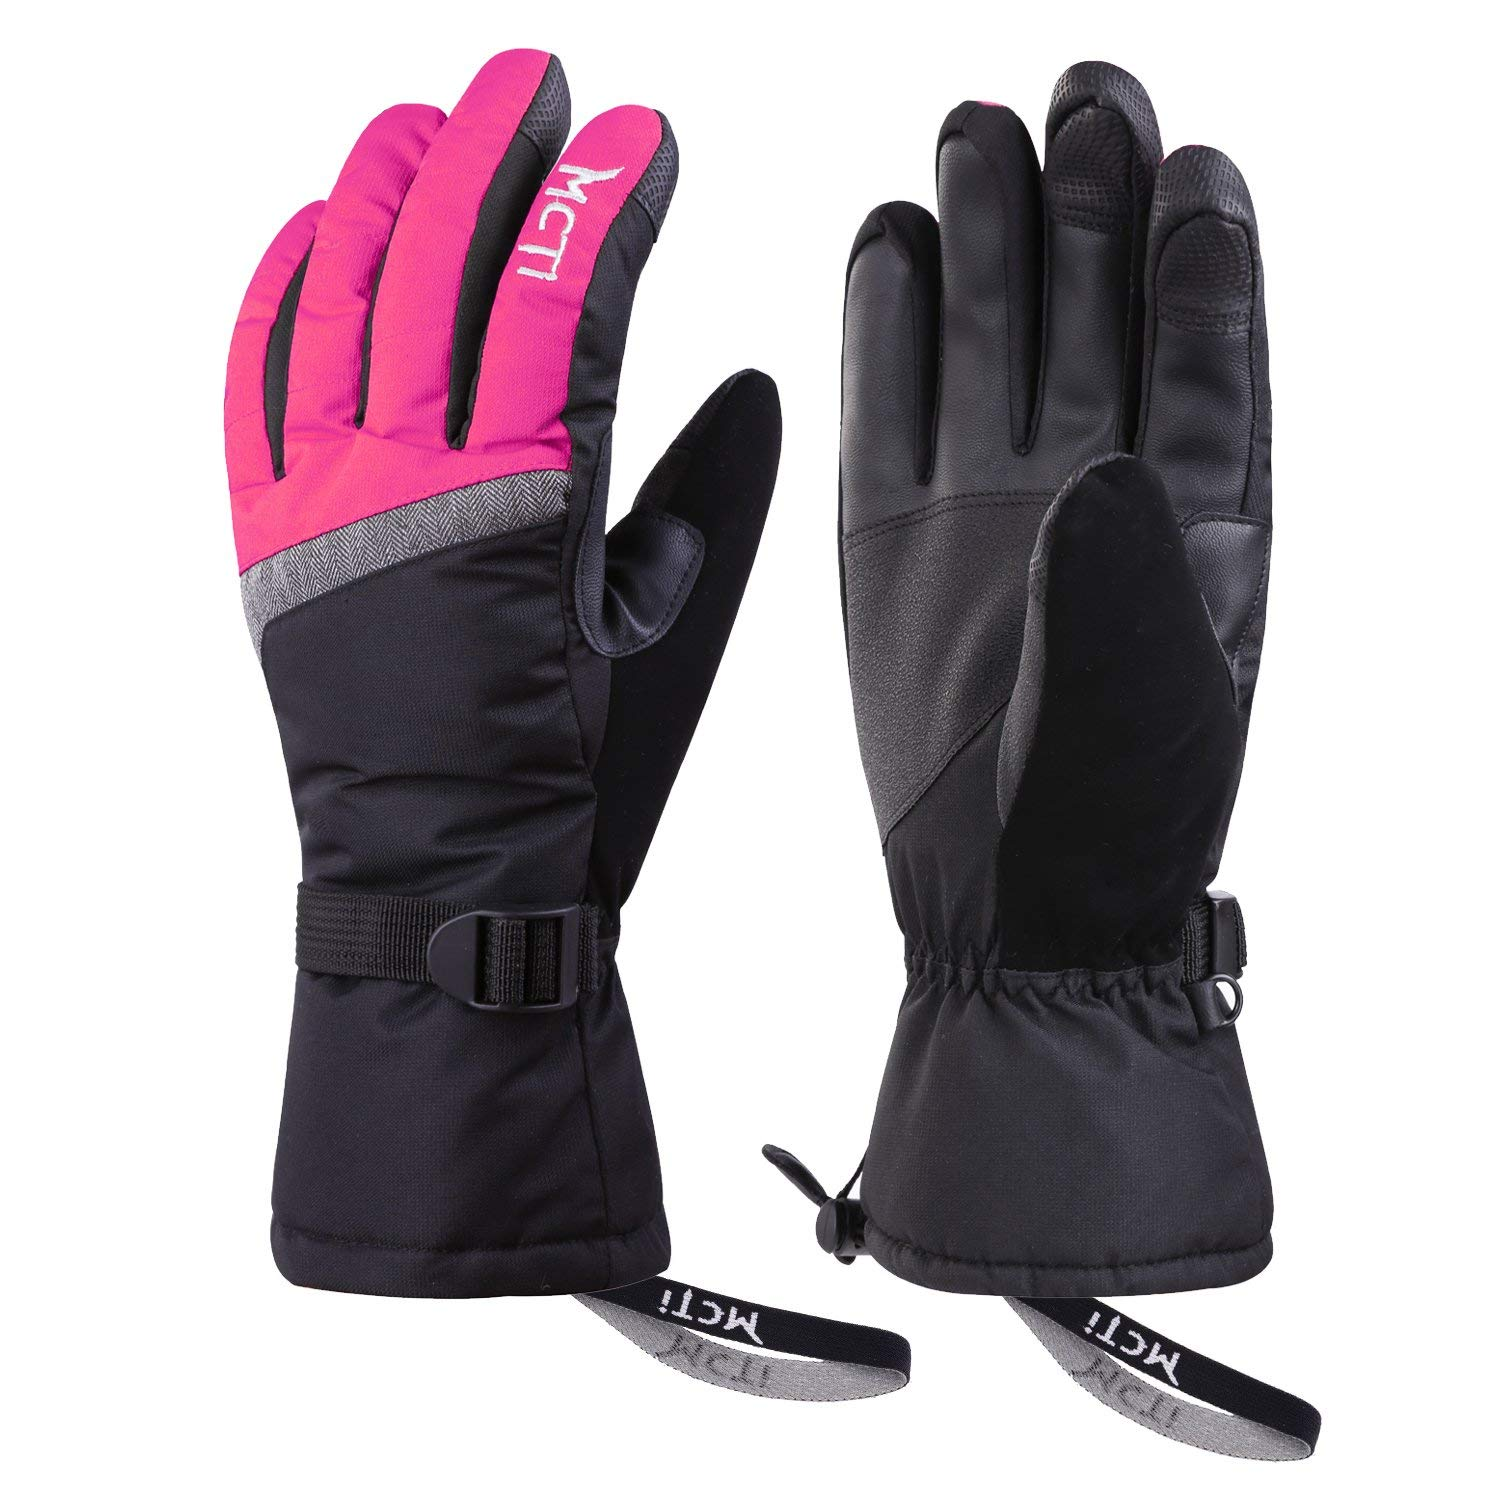 Best Winter Gloves Warmer